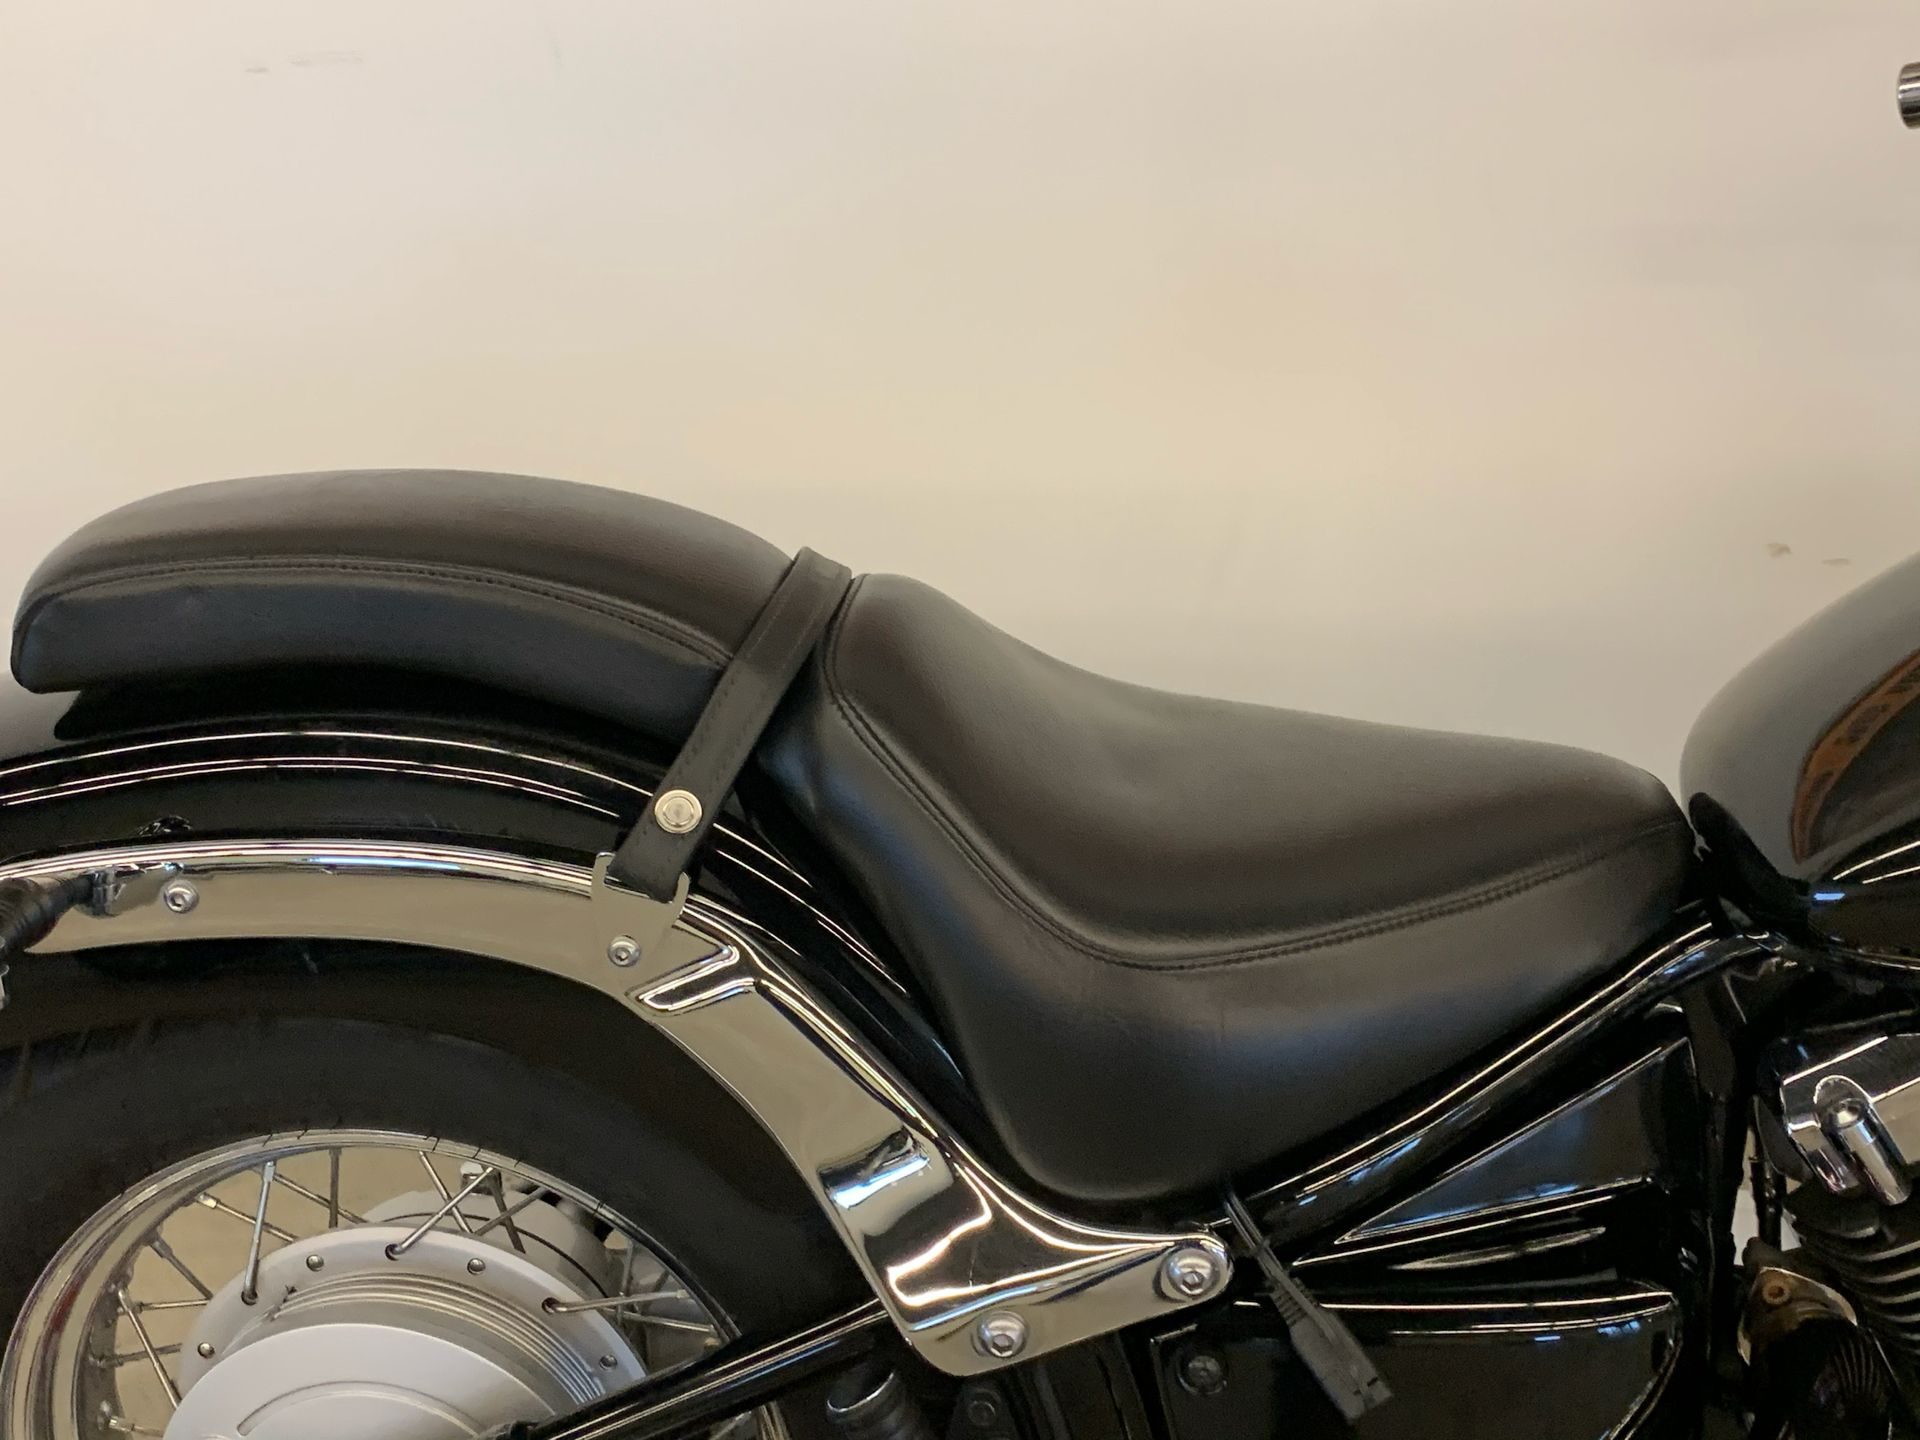 2013 Yamaha V Star 650 Custom in Flint, Michigan - Photo 13